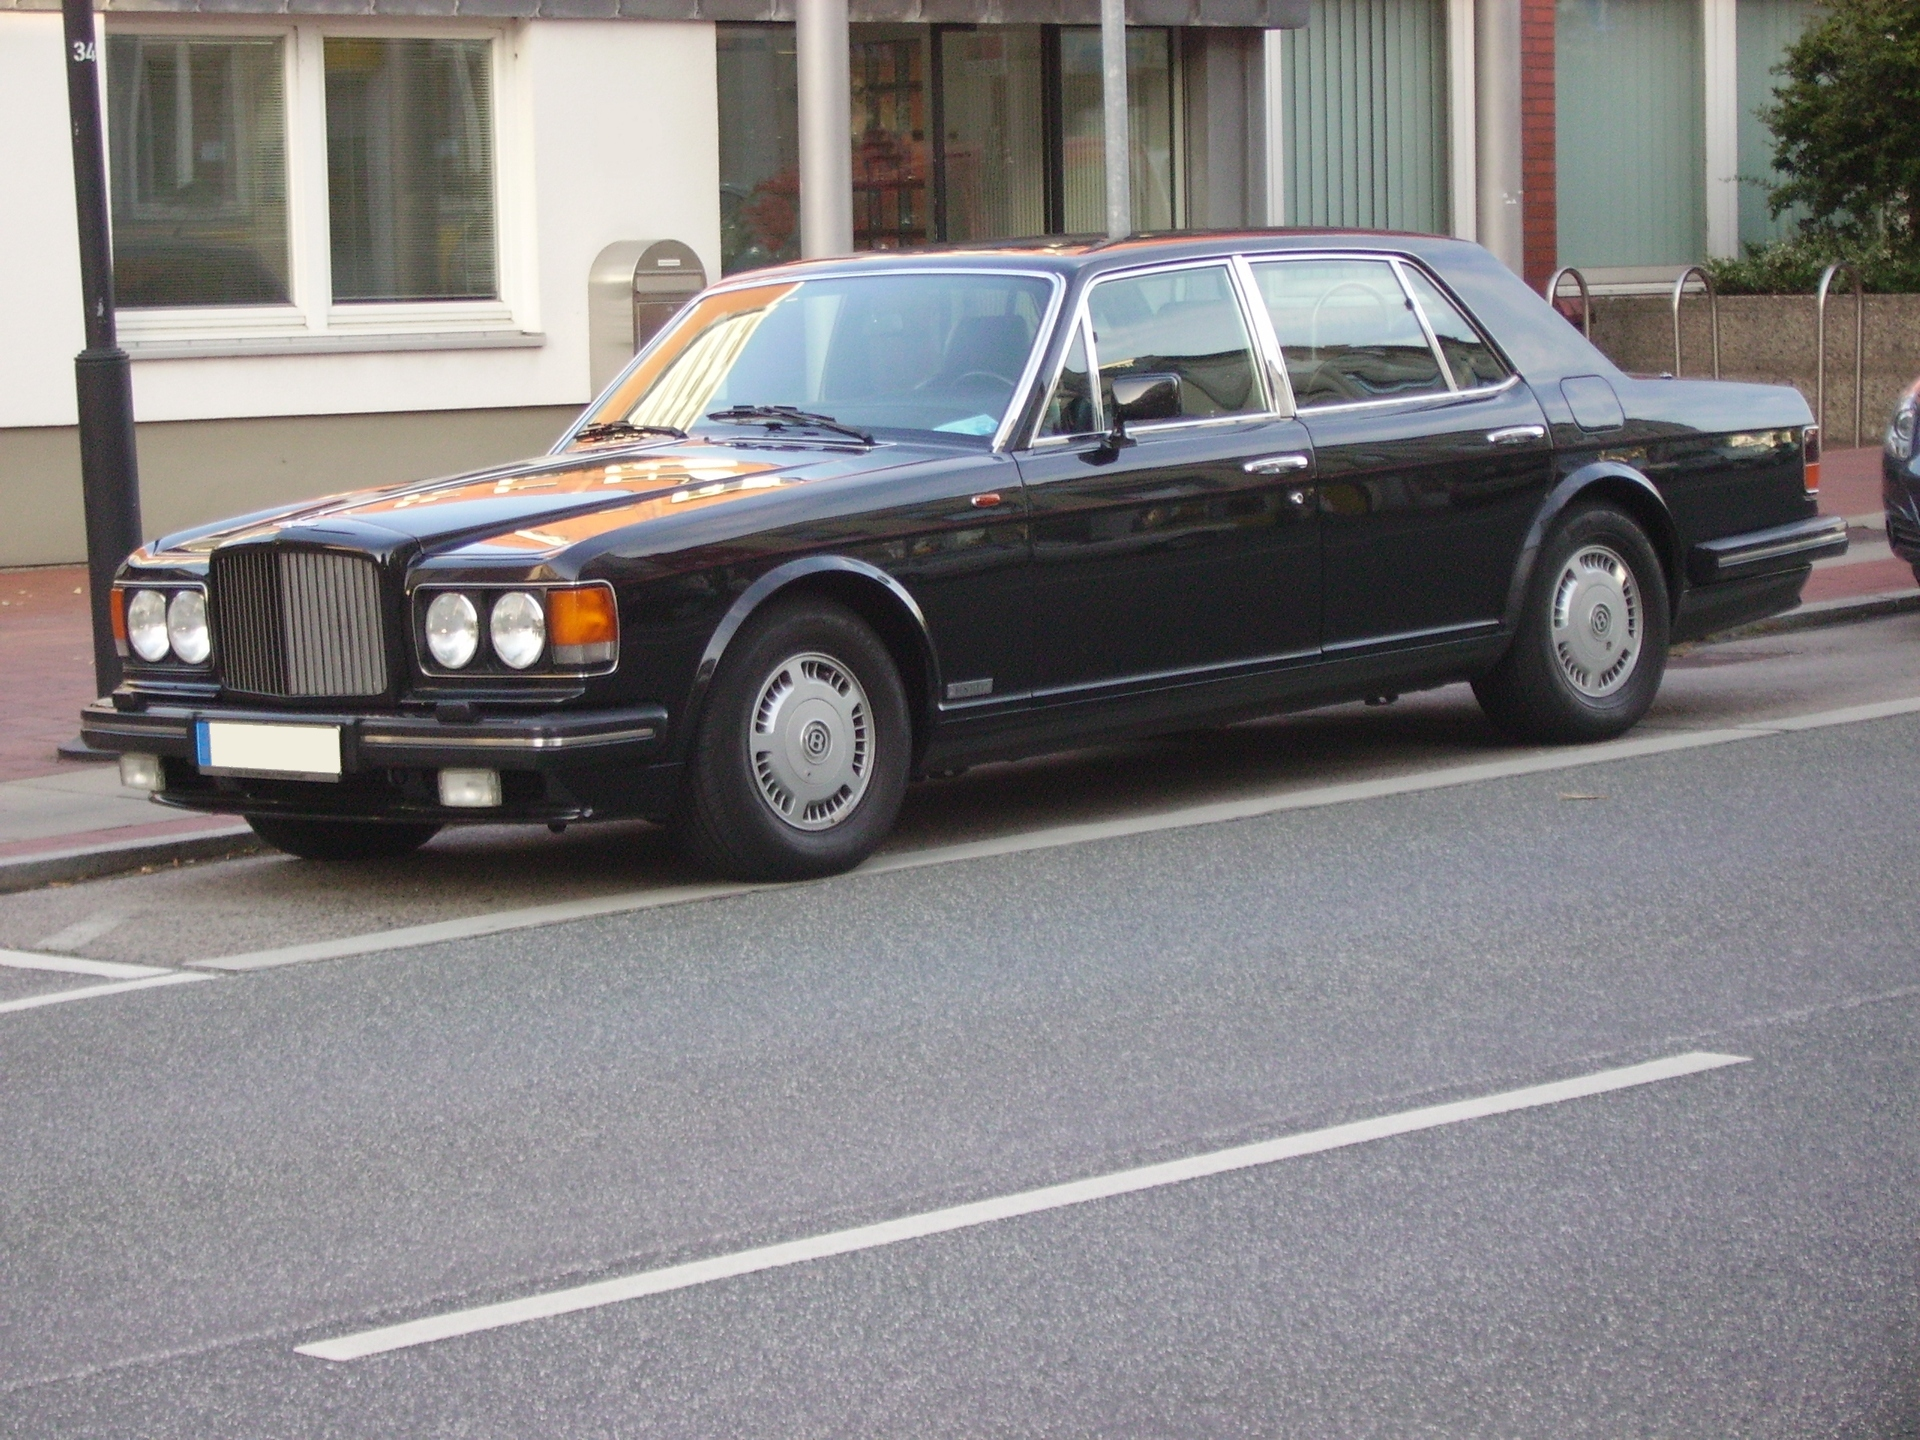 bentley turbo r pics #2